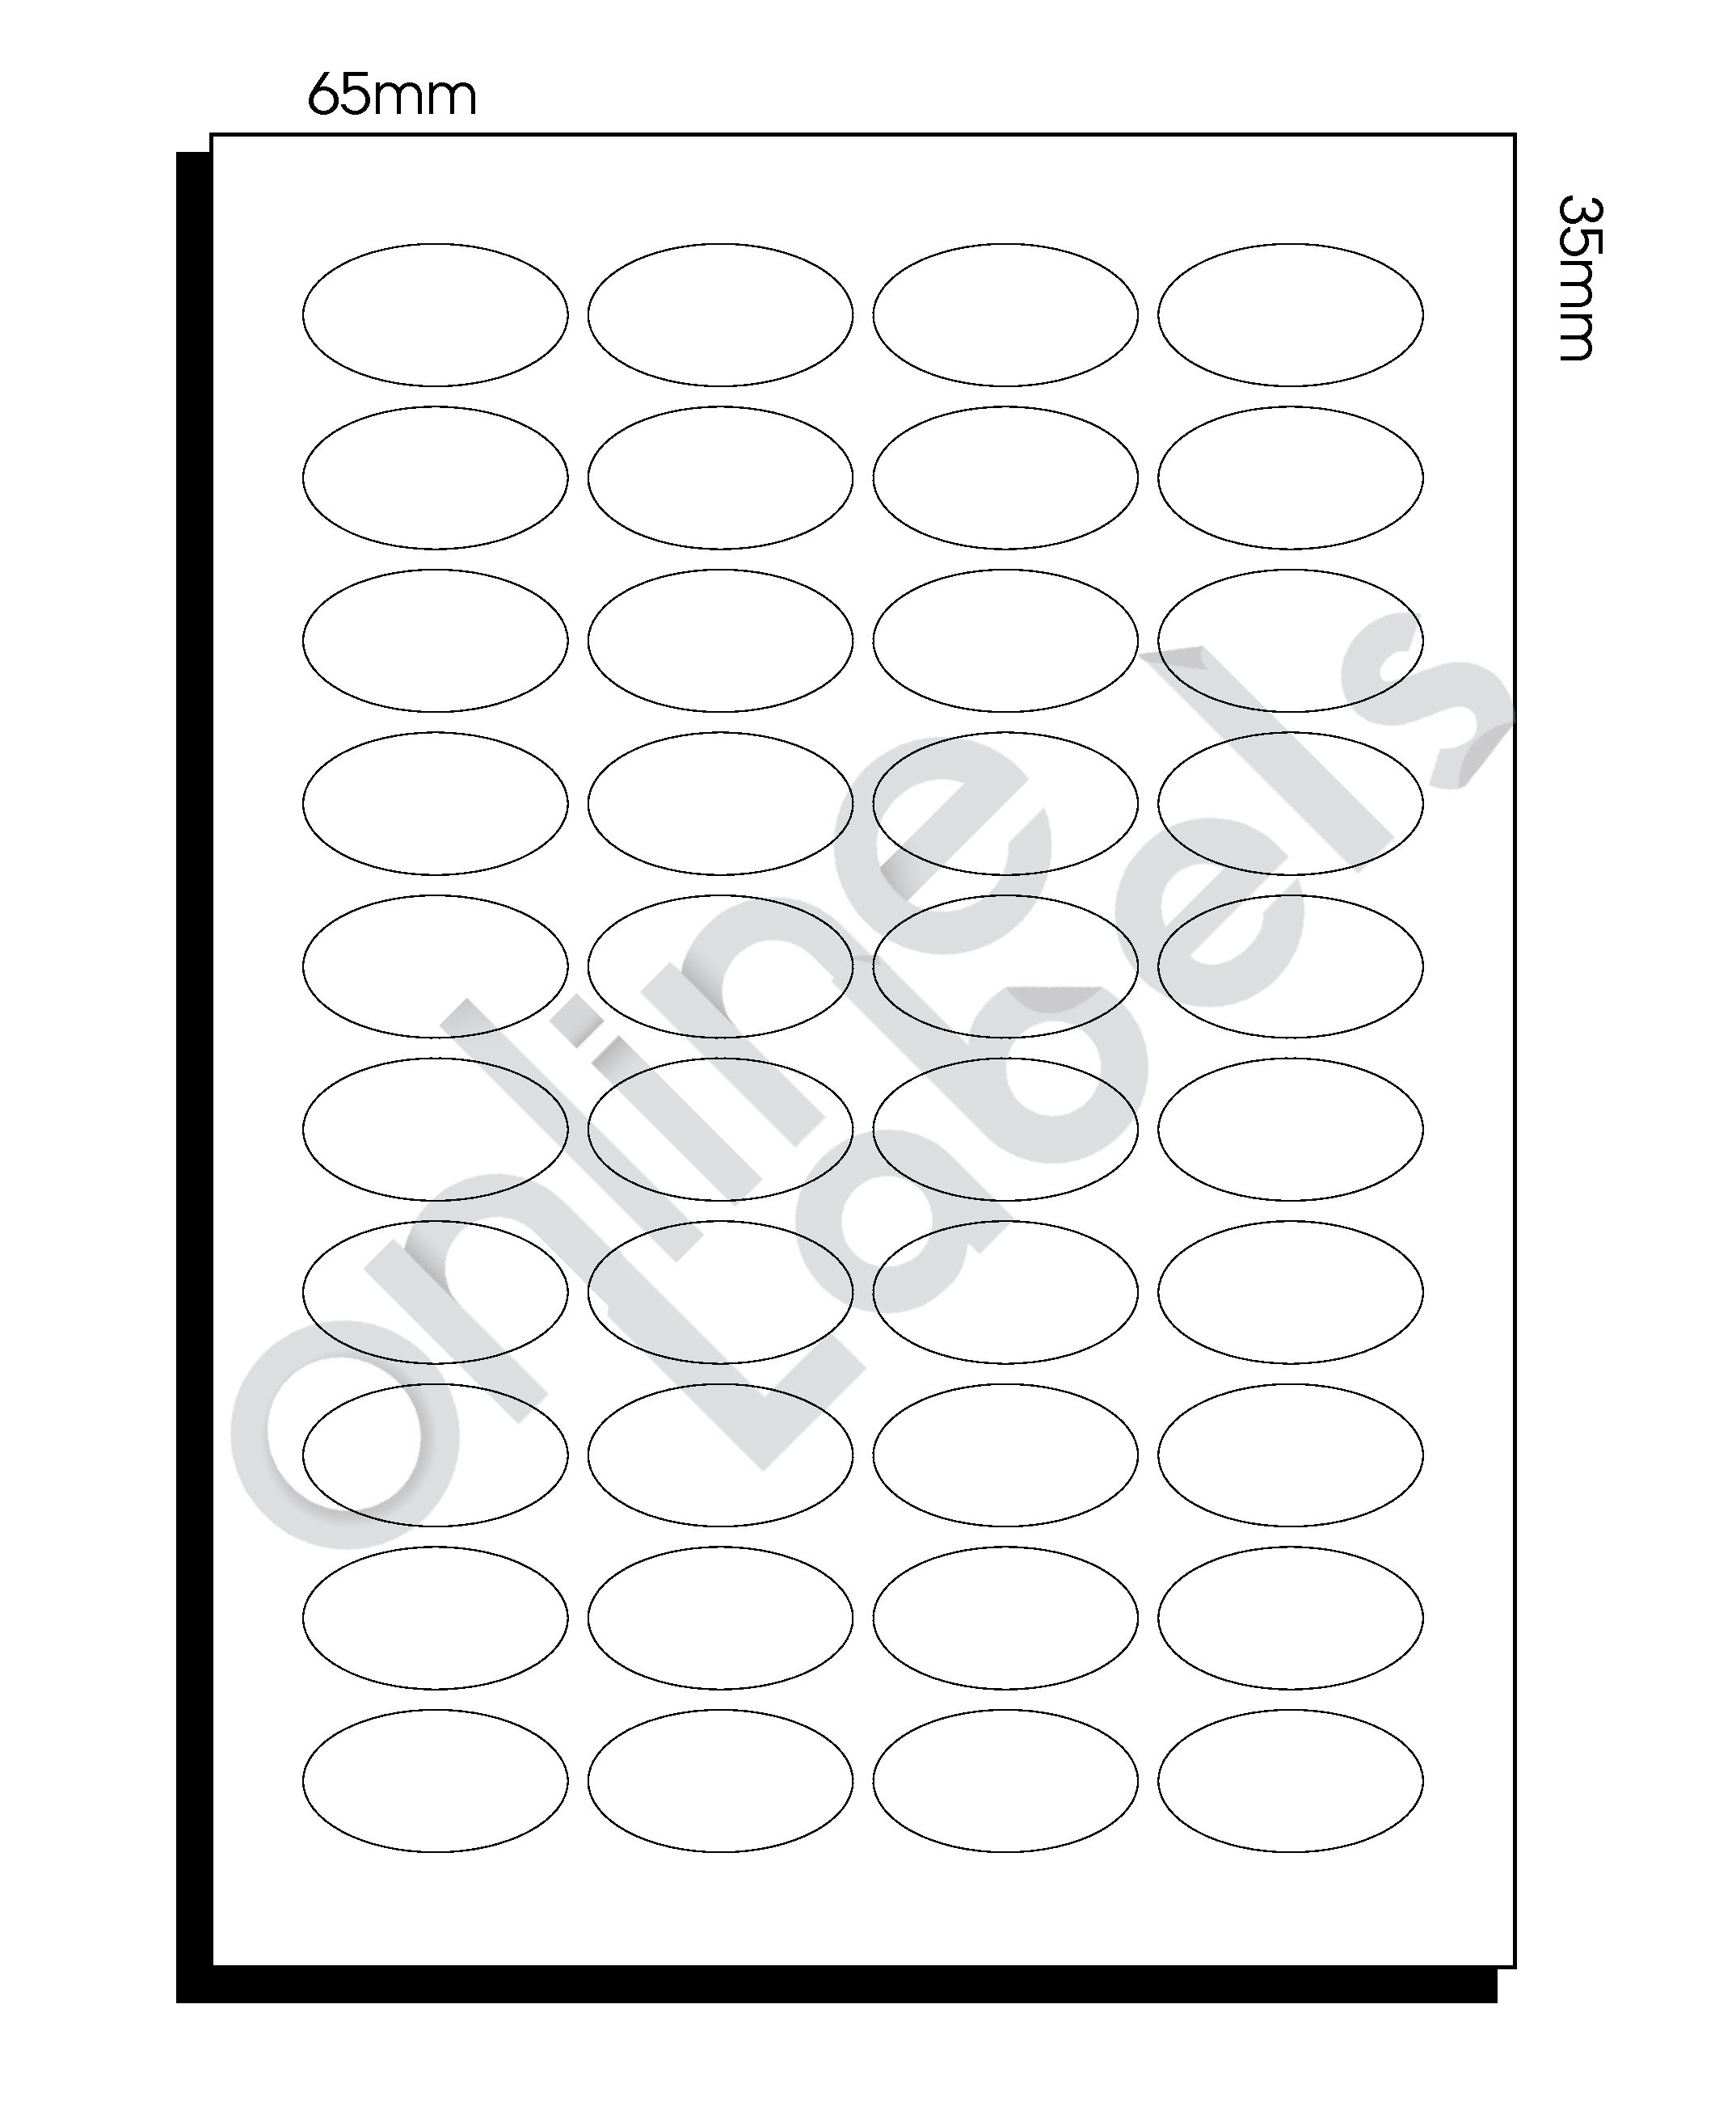 SR-A3 Diecut Labels – 65mm x 35mm Oval